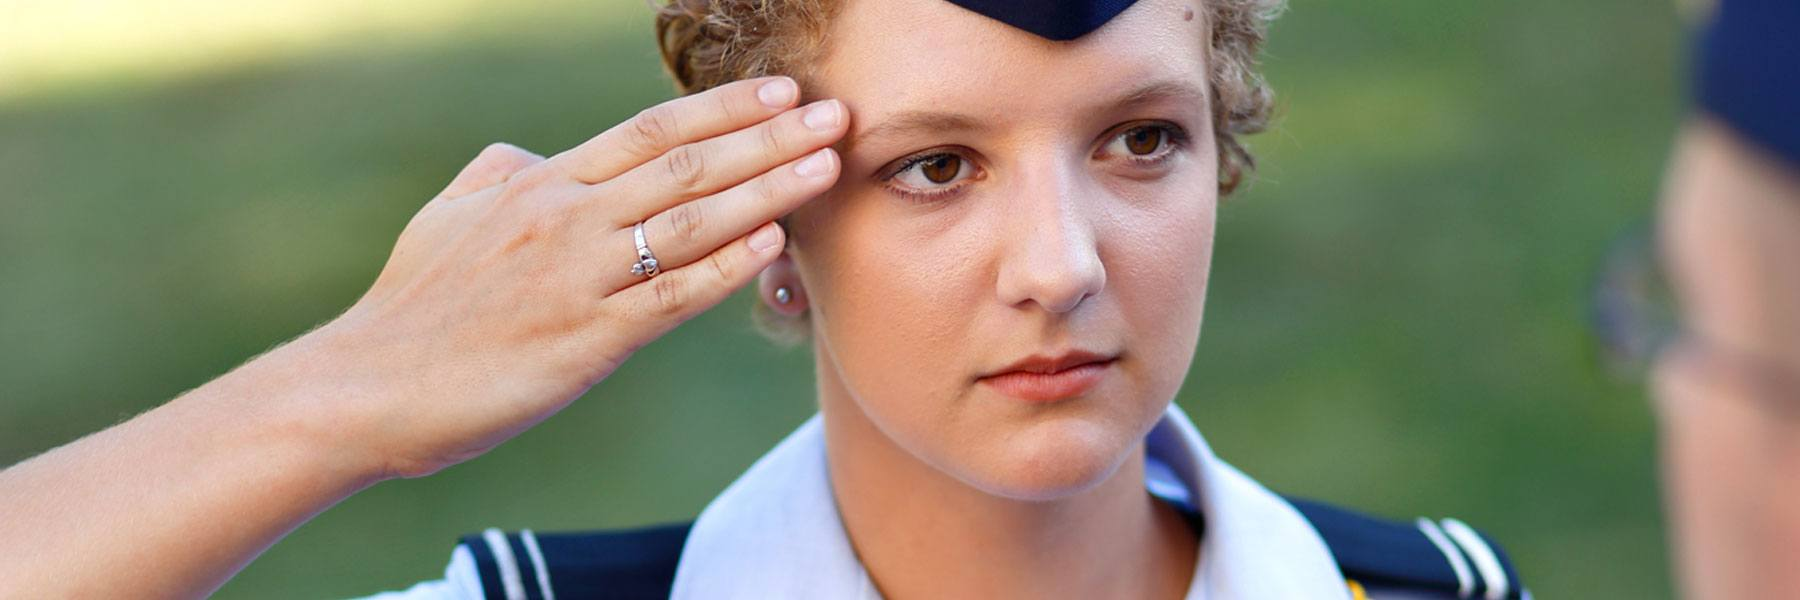 Female cadet wearing Air Force blues salutes a cadre member.